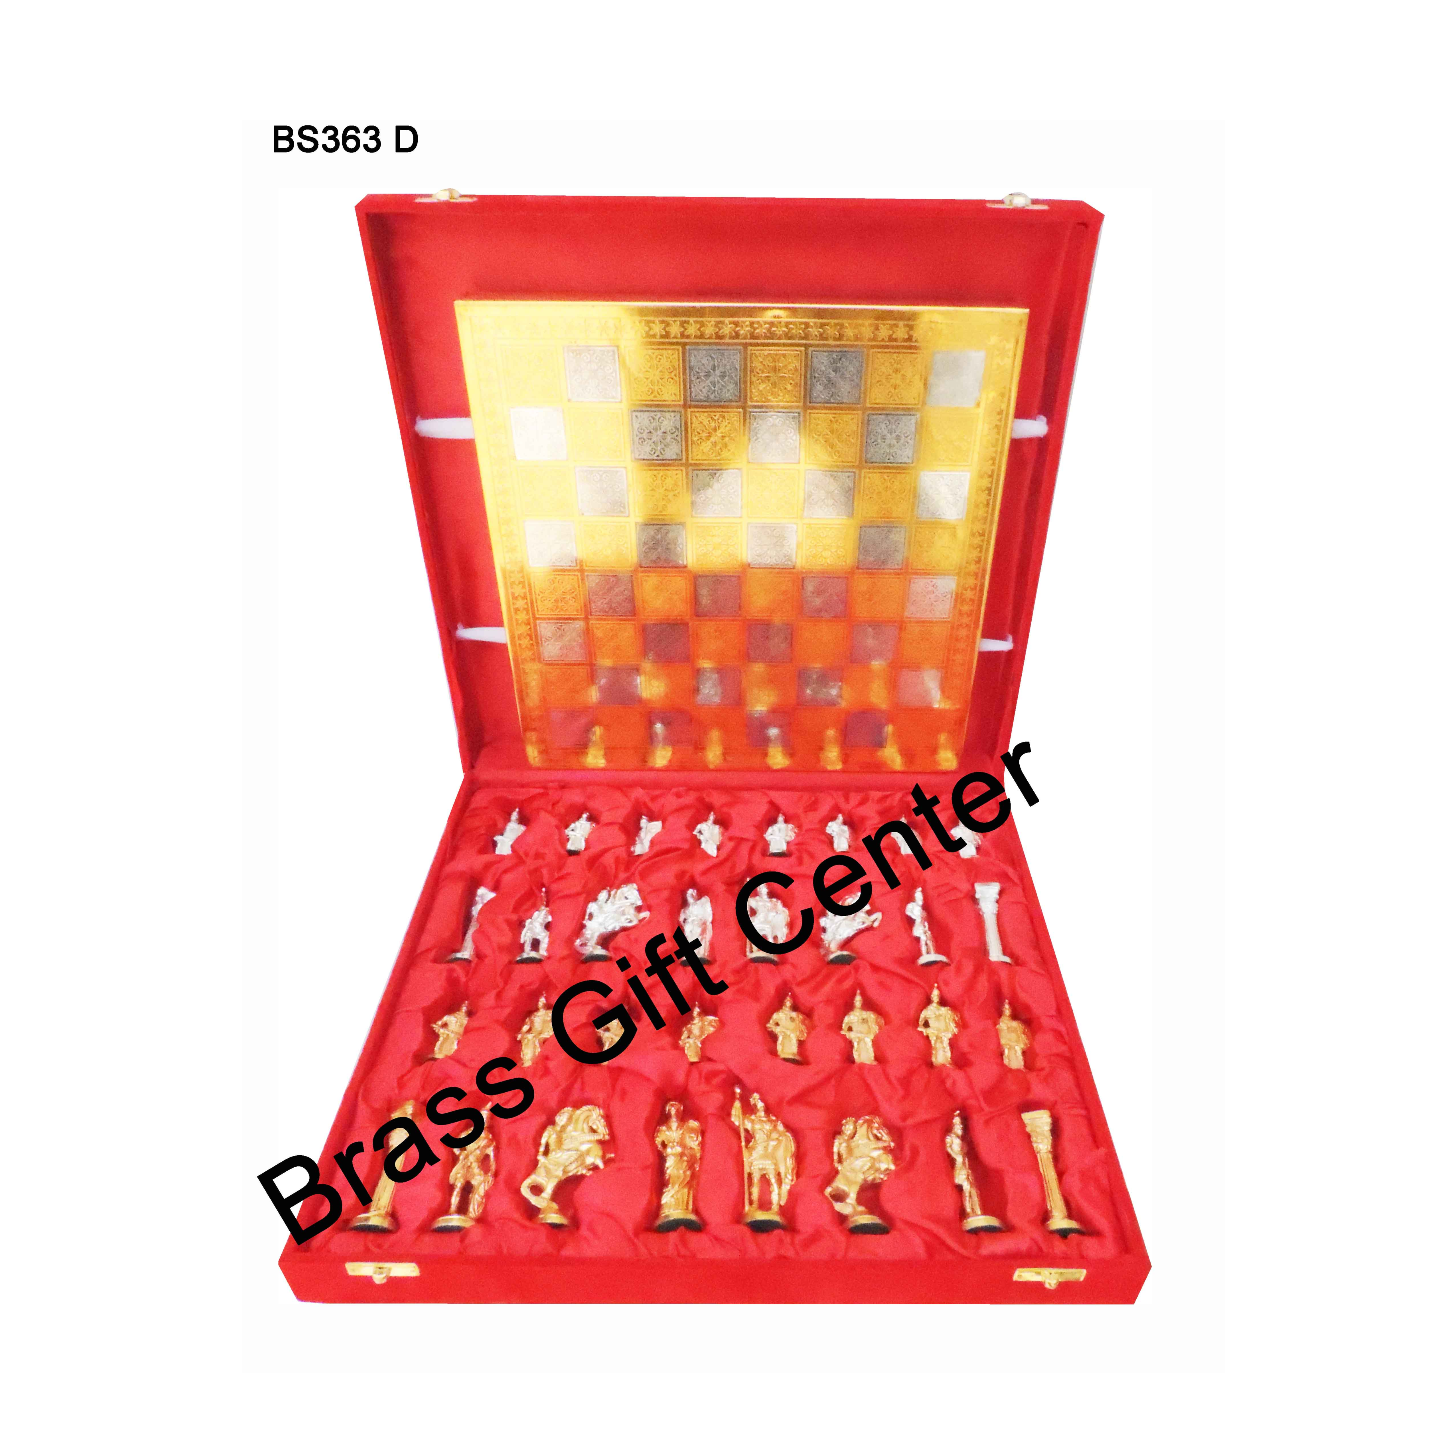 Brass Chess In Gold And Silver Finish - 1212 Inch  BS363 D